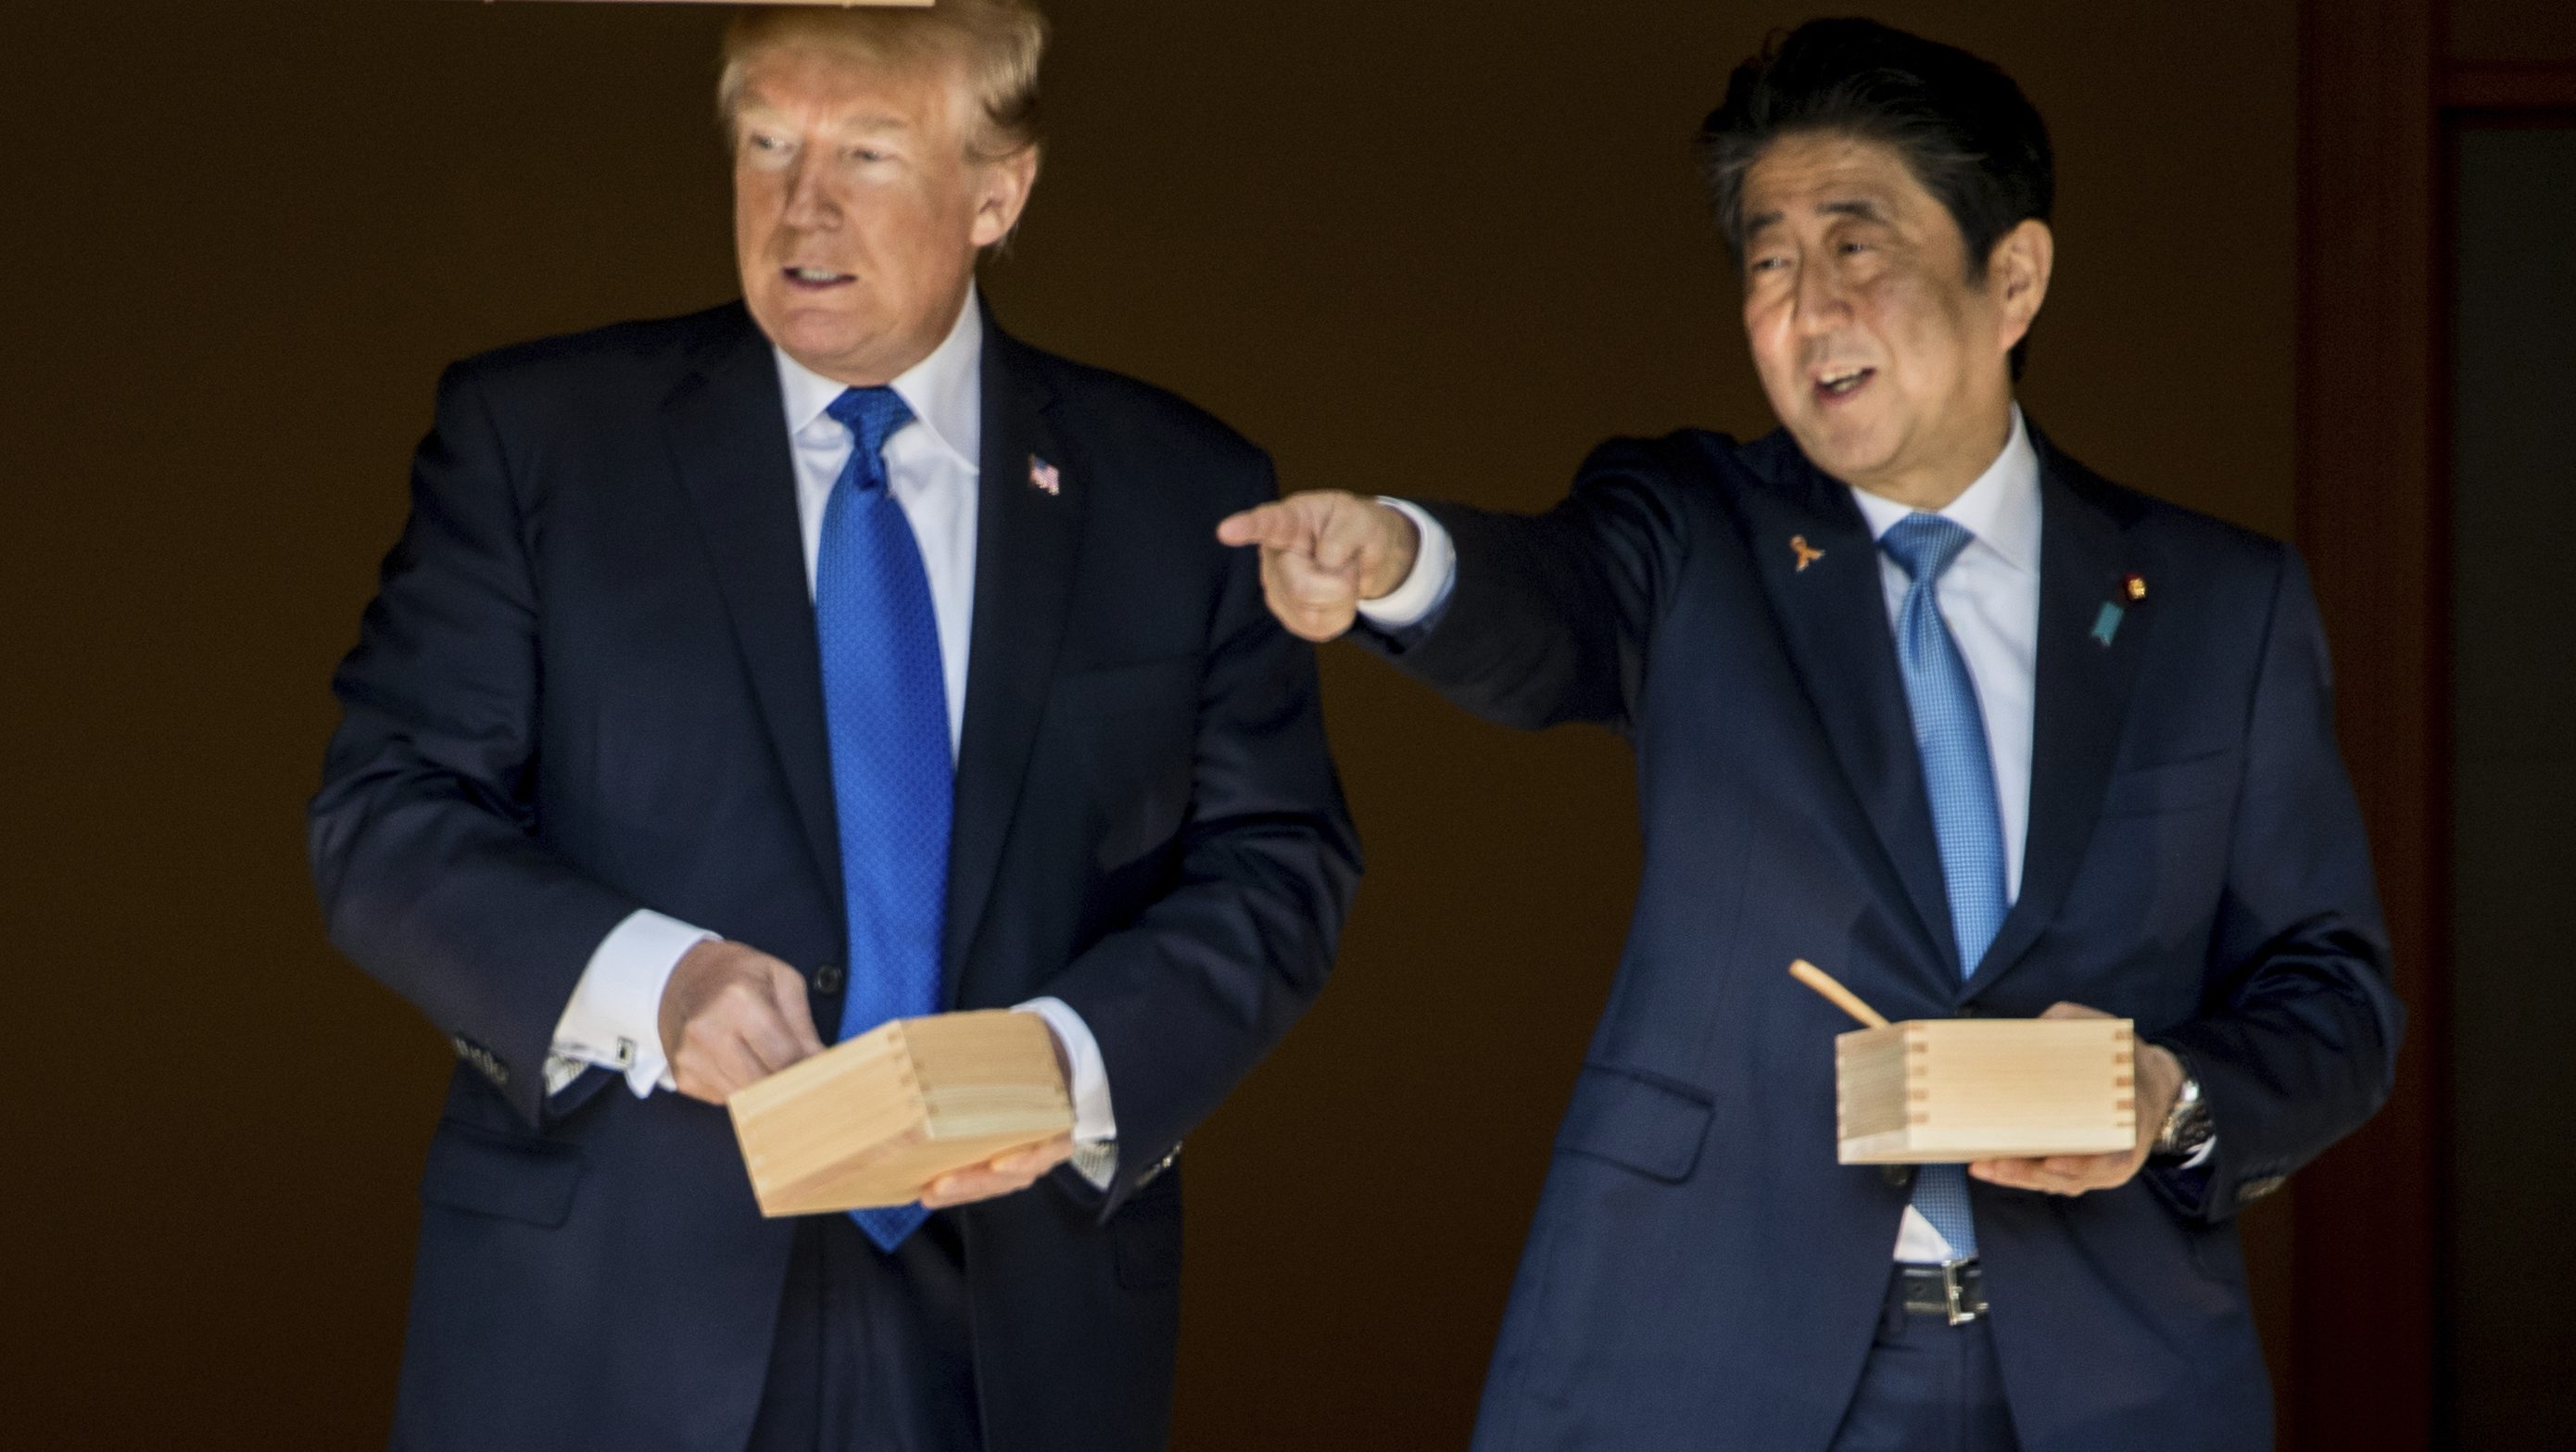 President Donald Trump and Japanese Prime Minister Shinzo Abe speak together while feeding fish at a koi pond at the Akasaka Palace, Monday, Nov. 6, 2017, in Tokyo. Trump is on a five country trip through Asia traveling to Japan, South Korea, China, Vietnam and the Philippines. (AP Photo/Andrew Harnik)